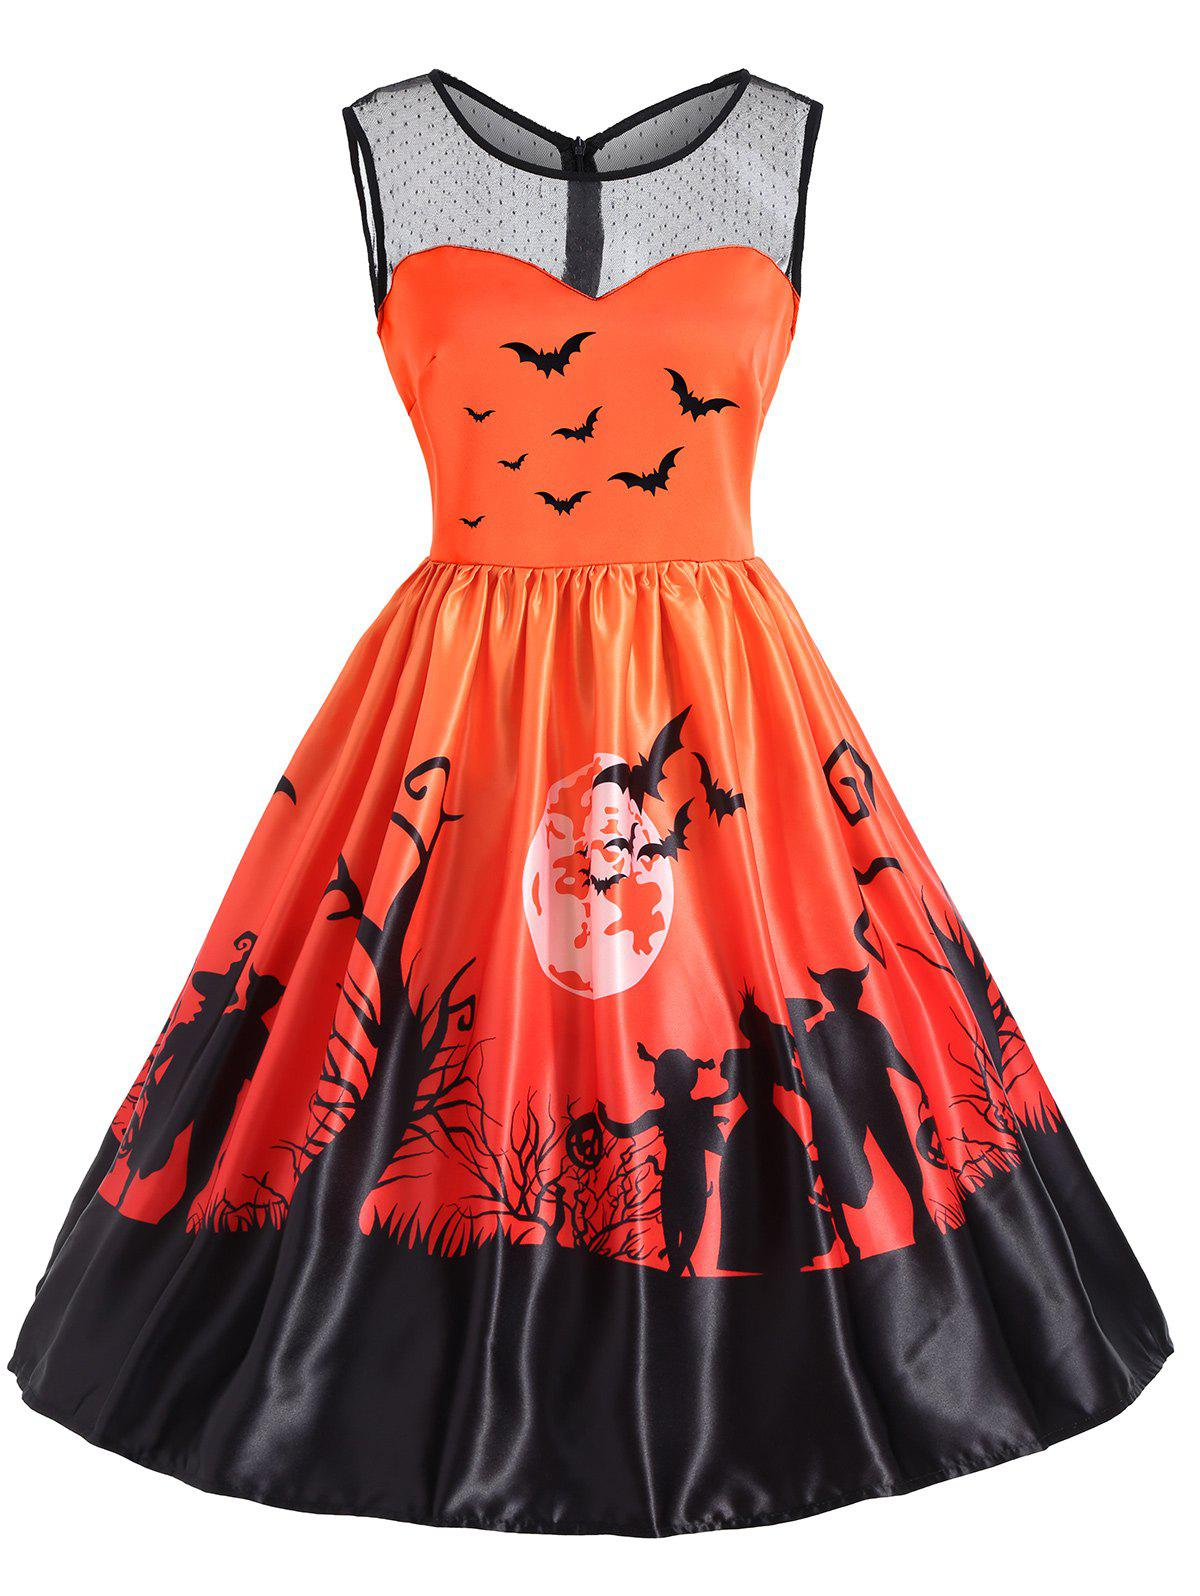 Mesh Yoke Halloween Bat Moon Print DressWOMEN<br><br>Size: S; Color: ORANGE; Style: Vintage; Material: Cotton,Polyester; Silhouette: A-Line; Dresses Length: Knee-Length; Neckline: Round Collar; Sleeve Length: Sleeveless; Embellishment: Mesh; Pattern Type: Ombre,Print; With Belt: No; Season: Fall,Spring,Summer; Weight: 0.3500kg; Package Contents: 1 x Dress;